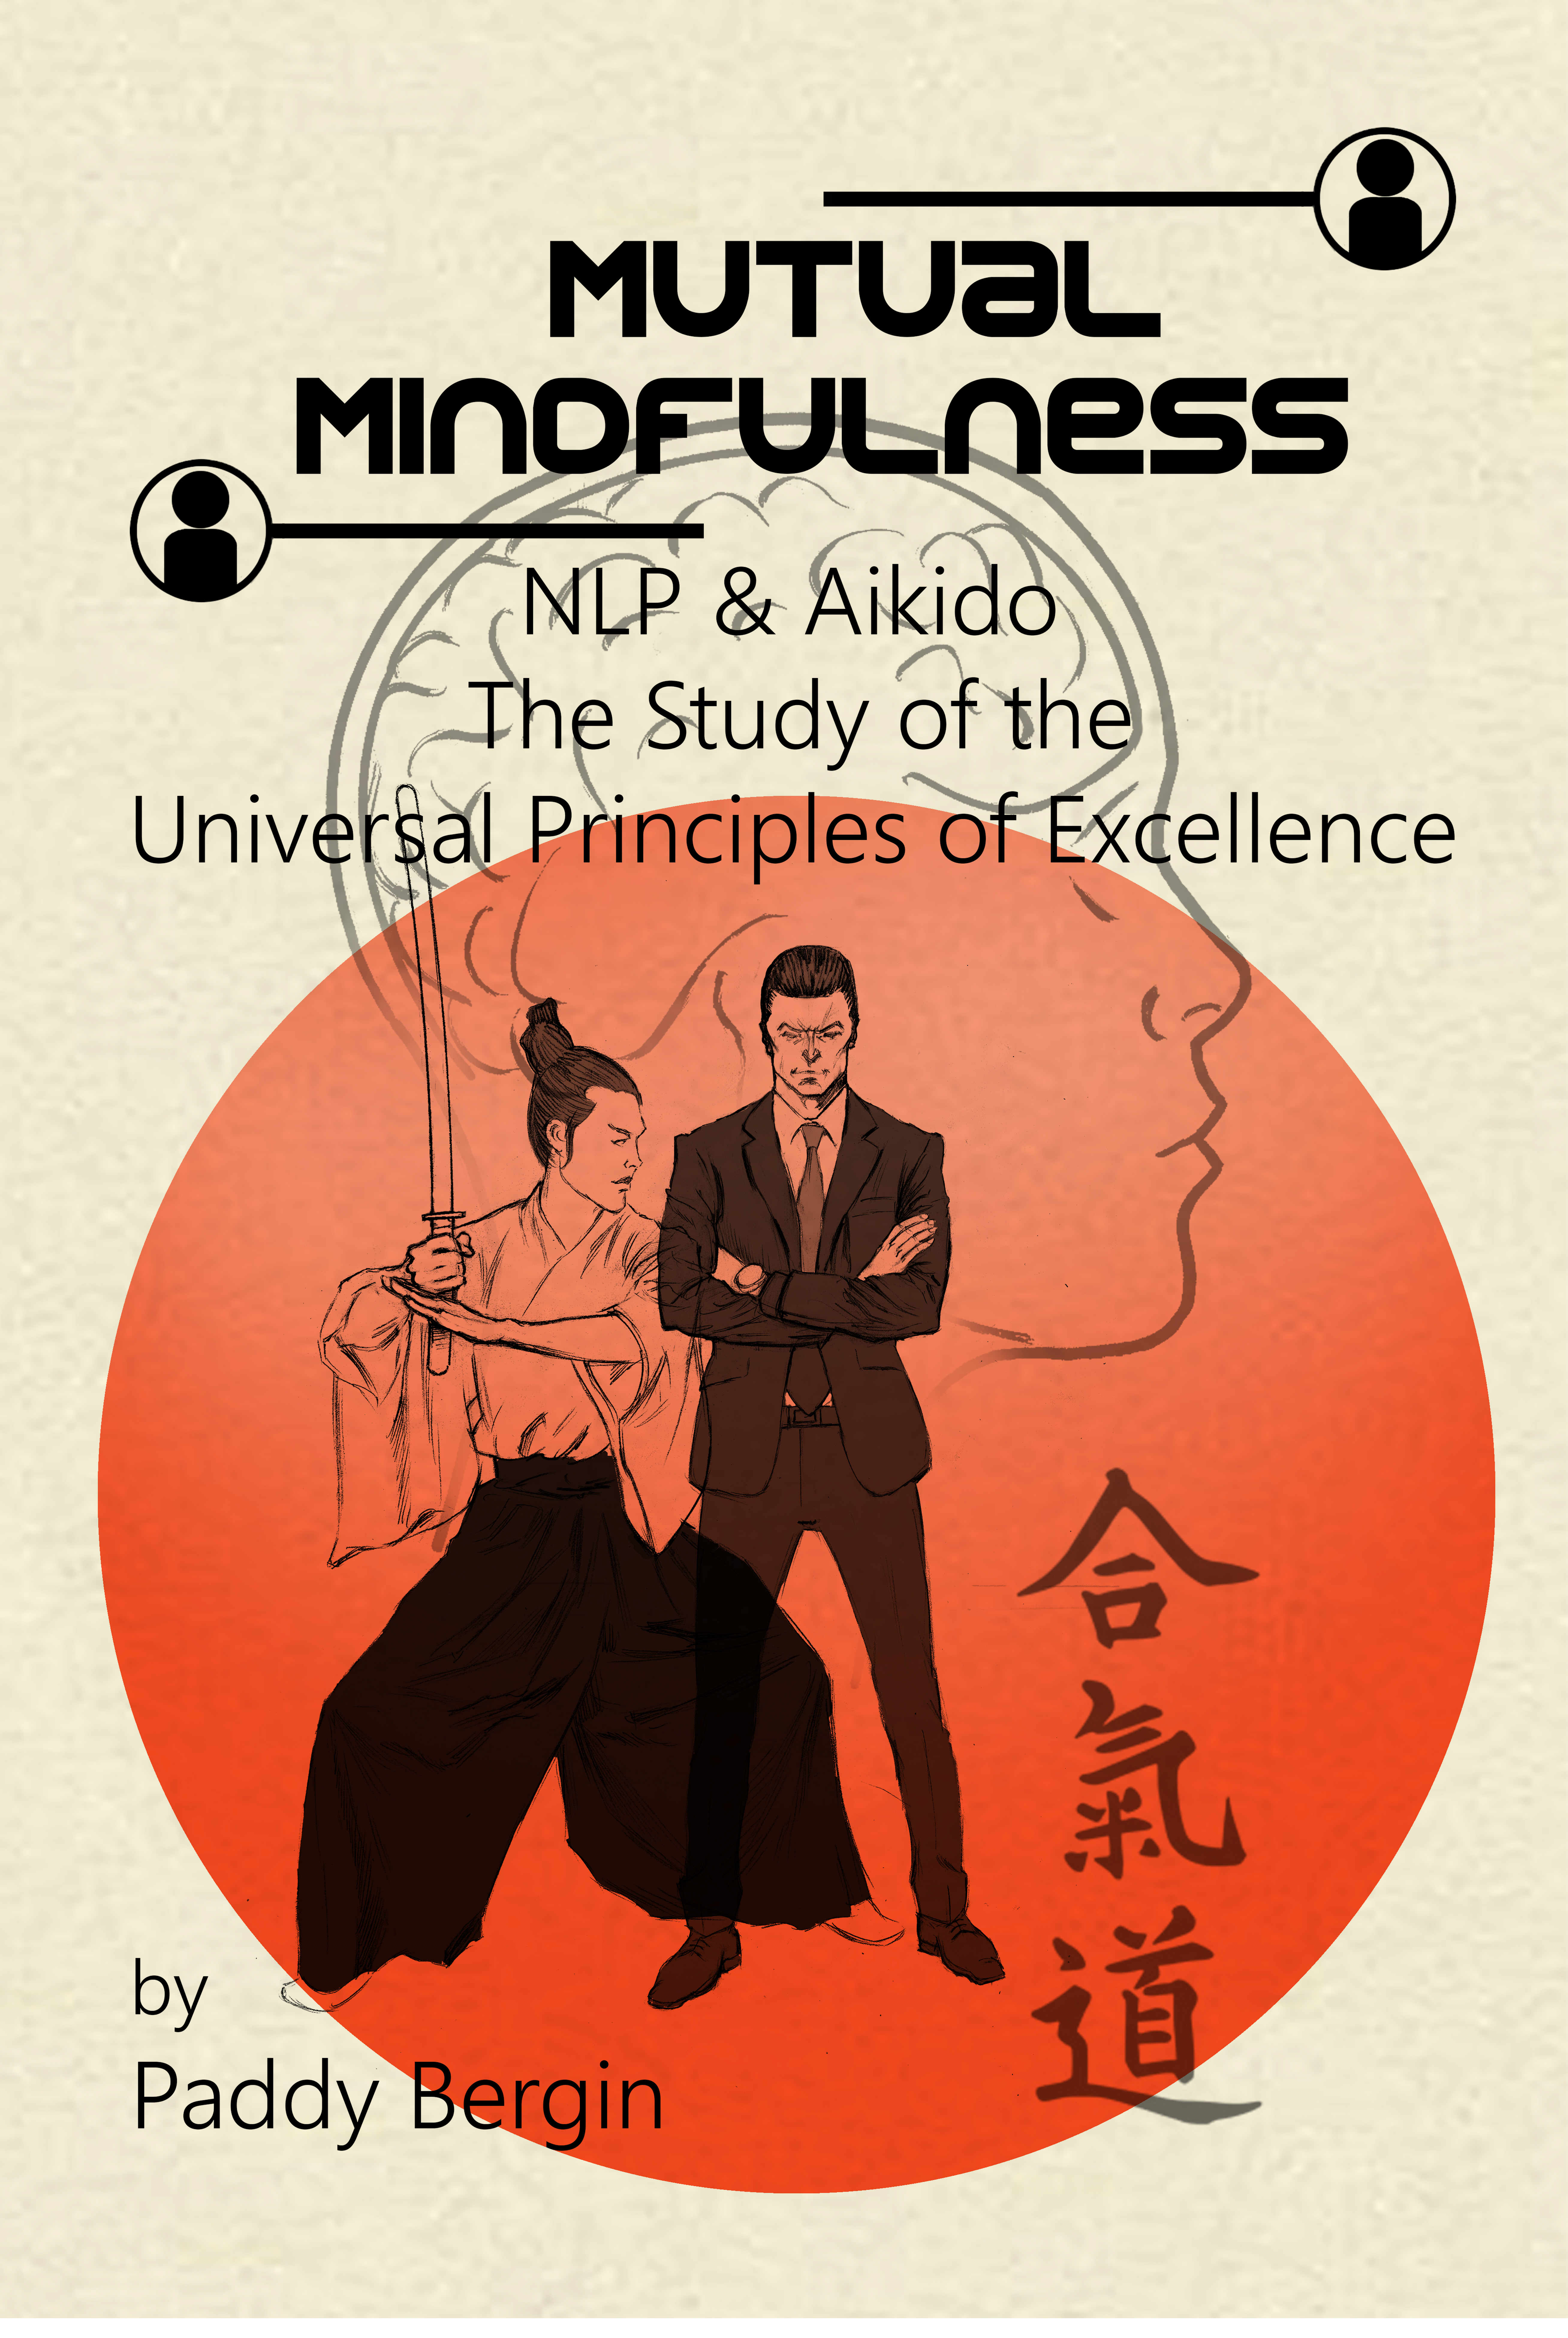 Front Cover Mut Mindfullness